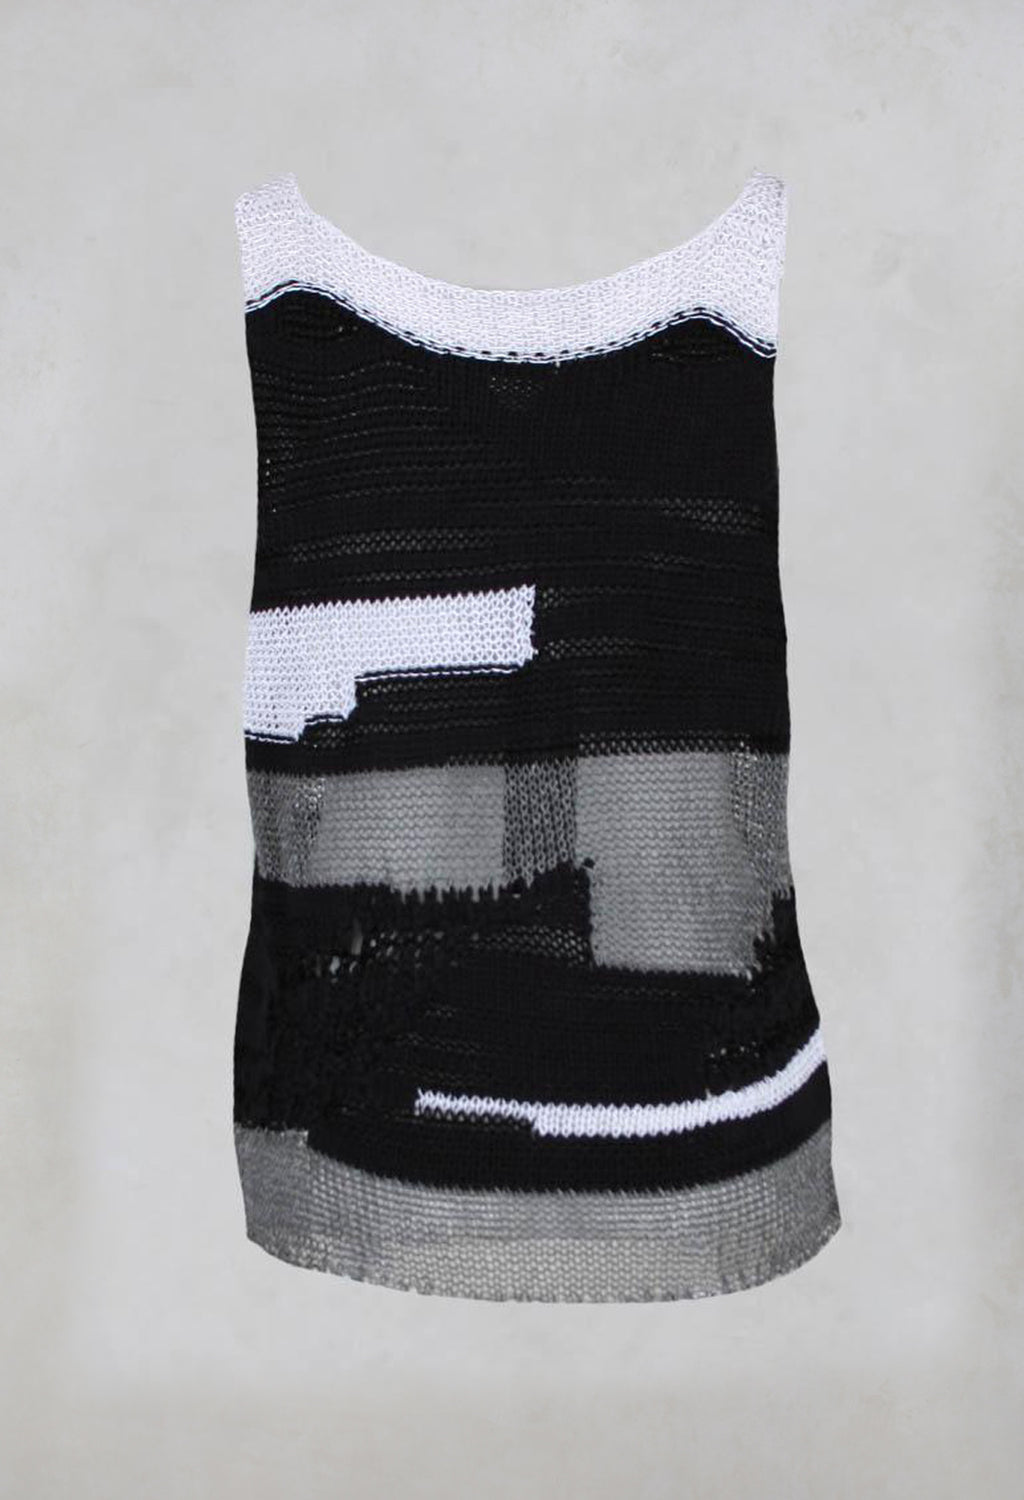 Sleeveless Knitted Crochet Vest in Black/White